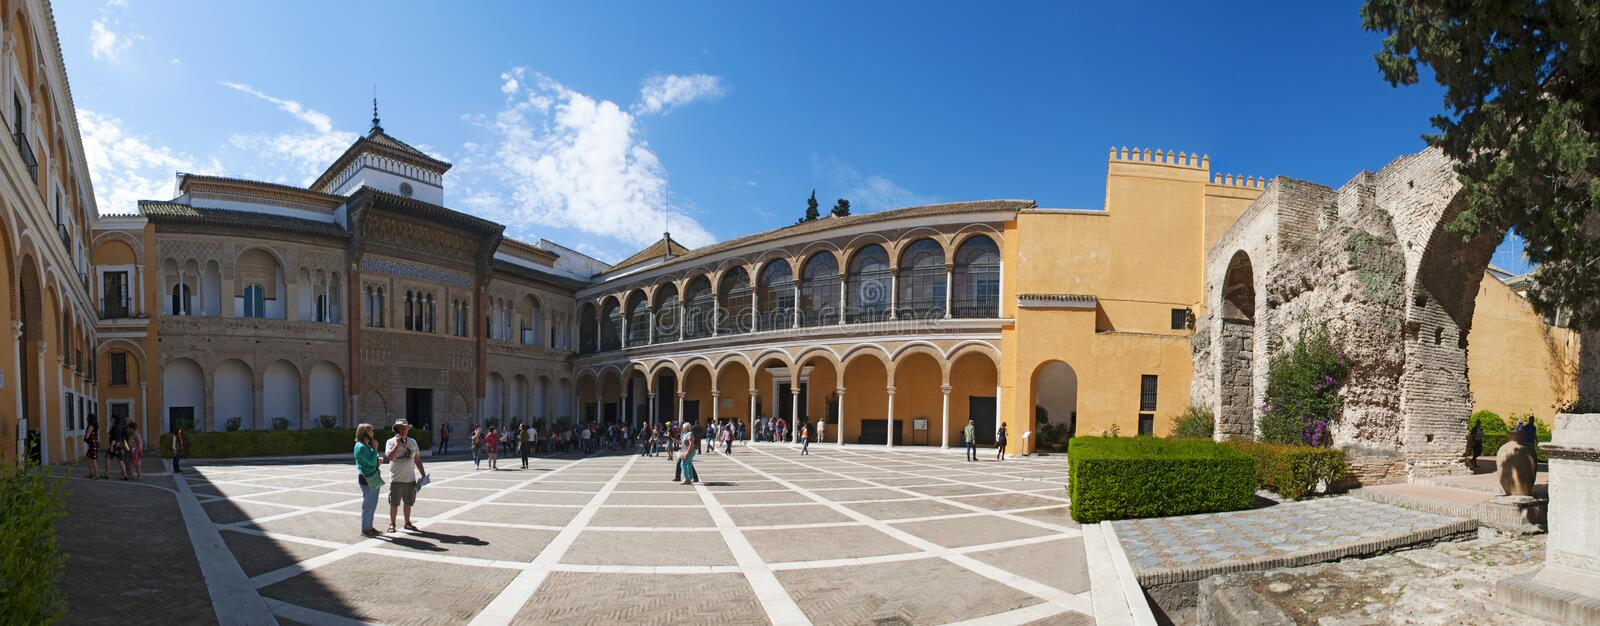 Seville, Sevilla, Spain, Andalusia, Iberian Peninsula, Europe,. Spain 18/04/2016: the Mudejar Palace of Pedro I, designed in Moorish style for a Christian ruler royalty free stock image